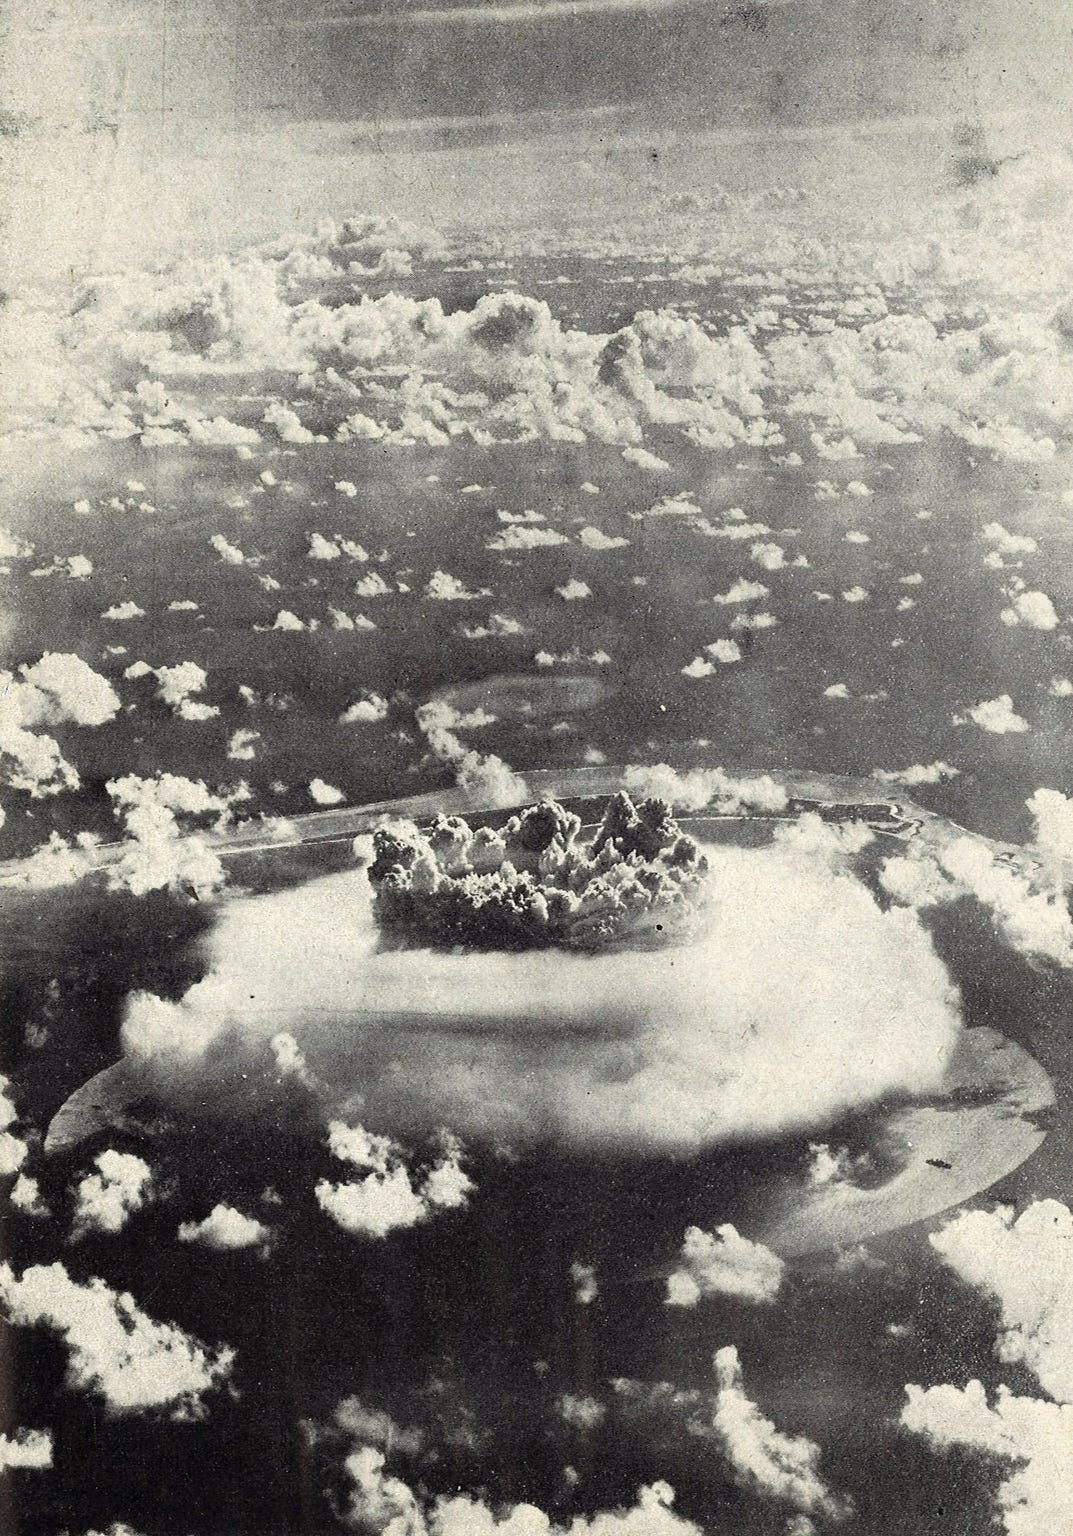 This photo of the Baker burst was made at 10,000 feet and shows its height over the Bikini Atoll. The crown of the explosion was compared to cauliflower.